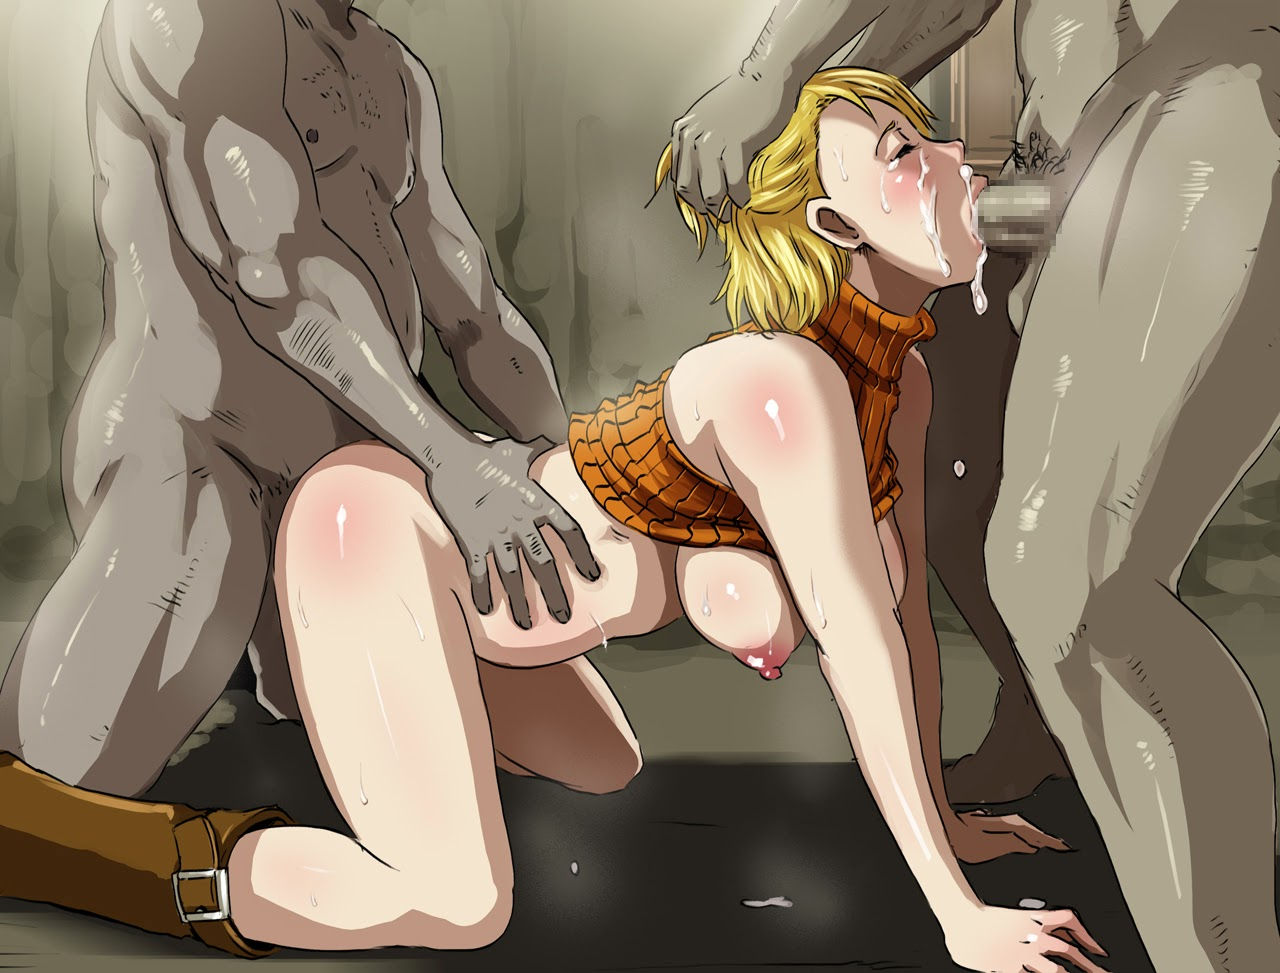 Female anime monster fucked by human porn  cartoon clips